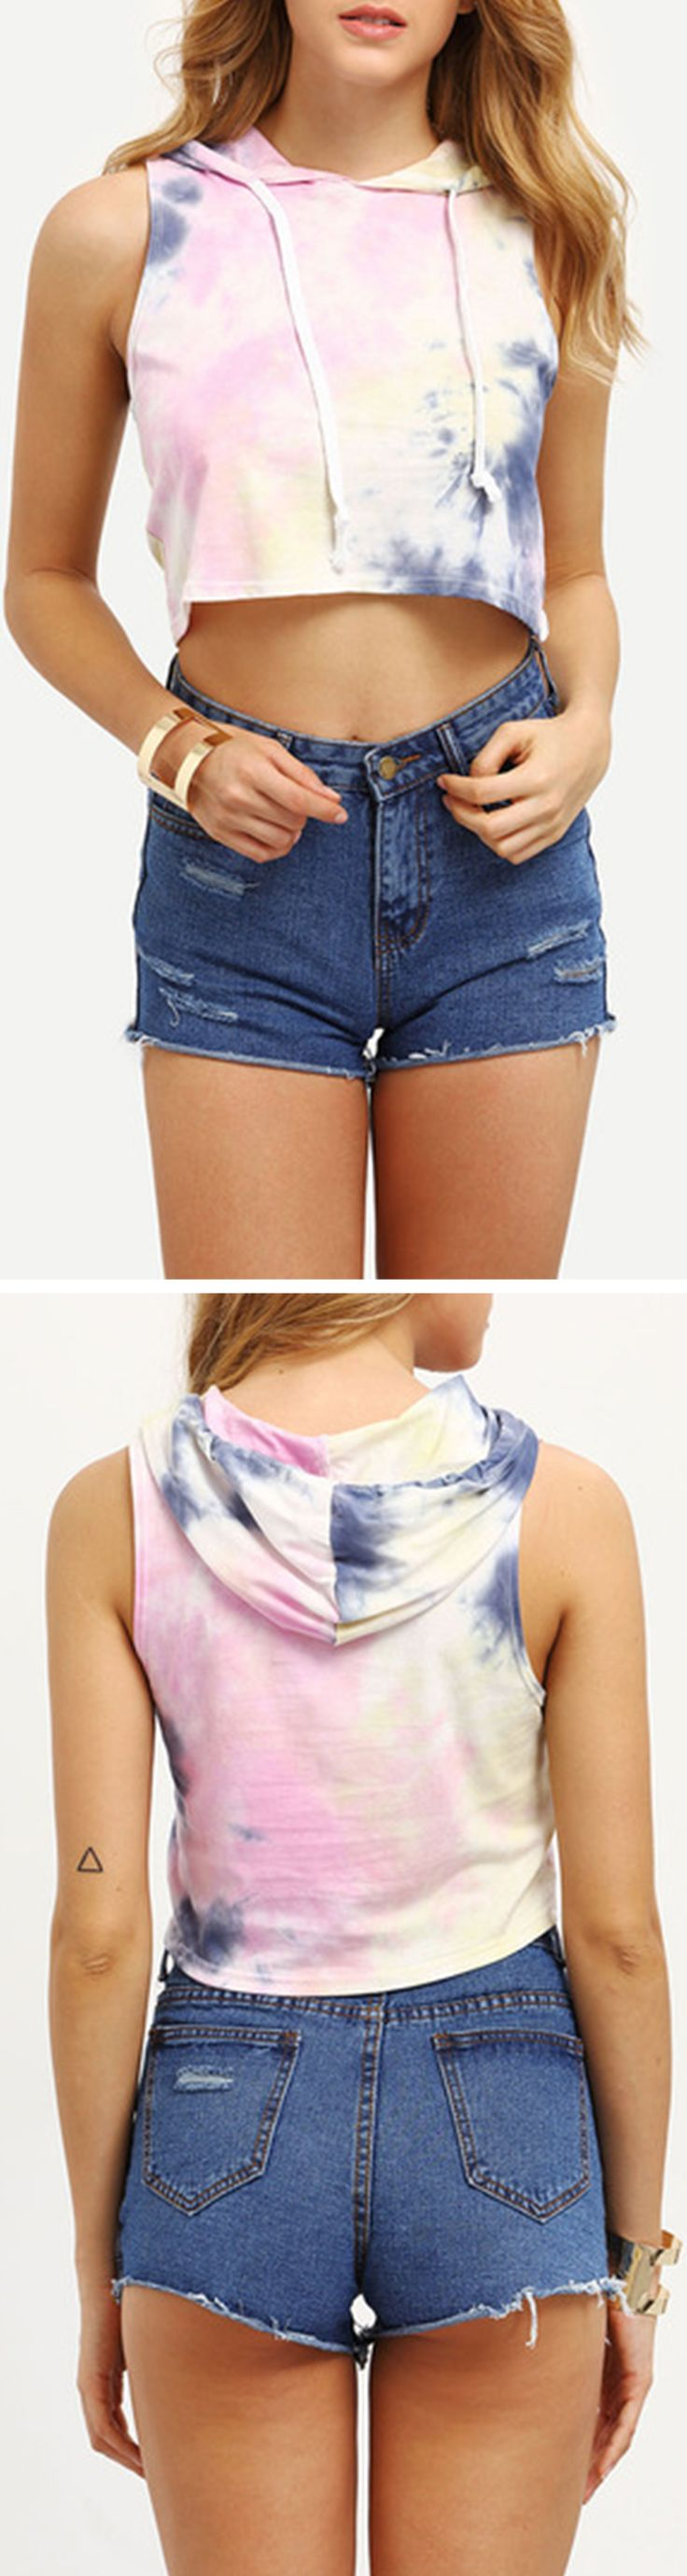 Tie Dye Print Hooded Crop Tank Top. Street fashion crop top. Great for shopping or beach travel.